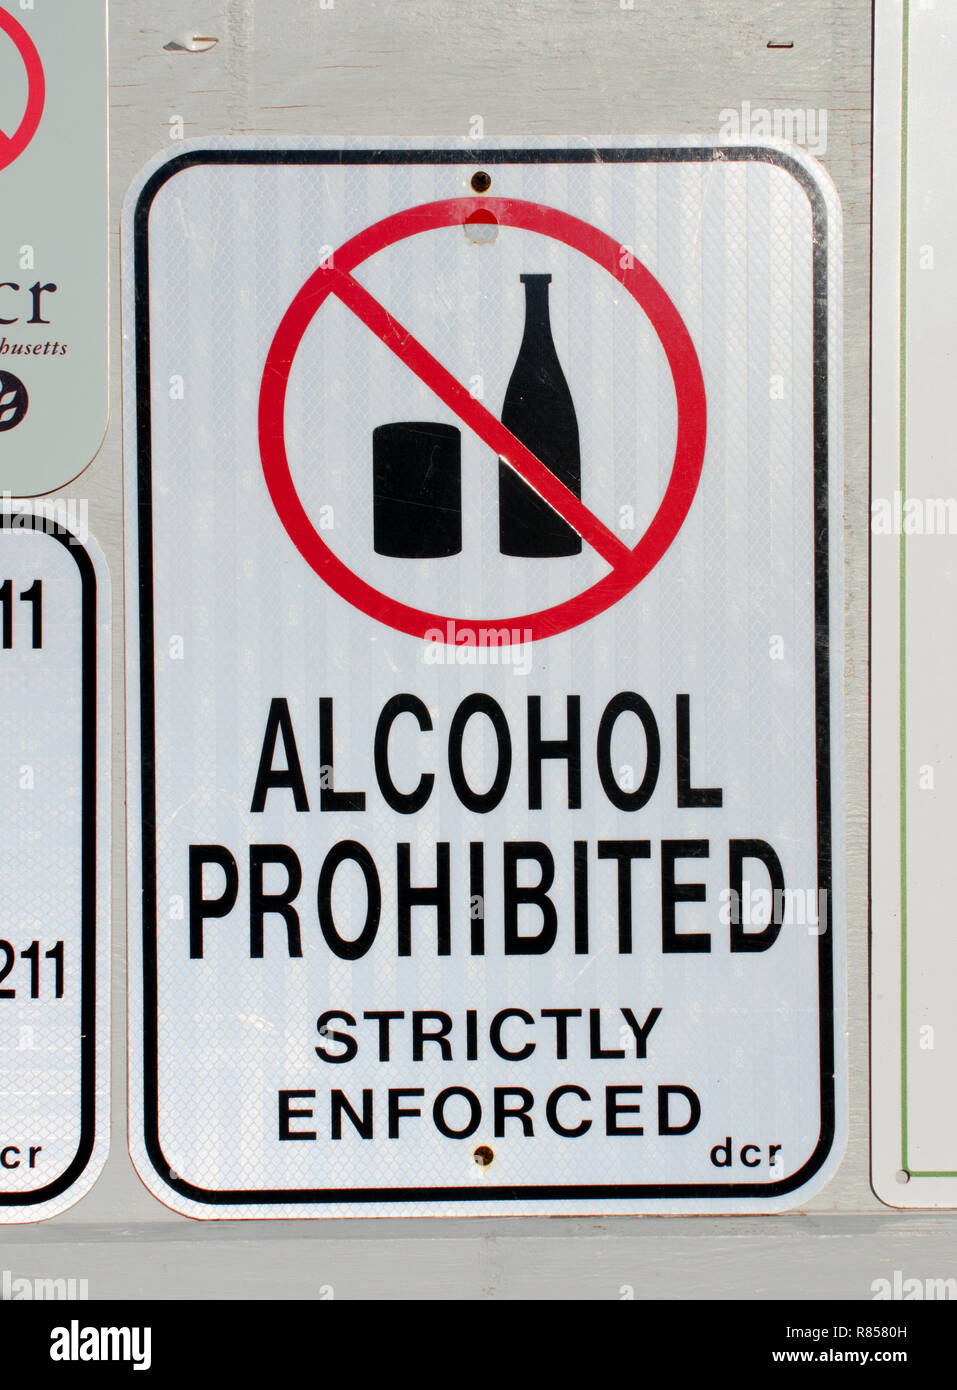 Alcohol Prohibited Strictly Enforced sign meaning no alcohol is allowed at Scusset Beach in Sagamore, Bourne, Cape Cod, Massachusetts USA - Stock Image